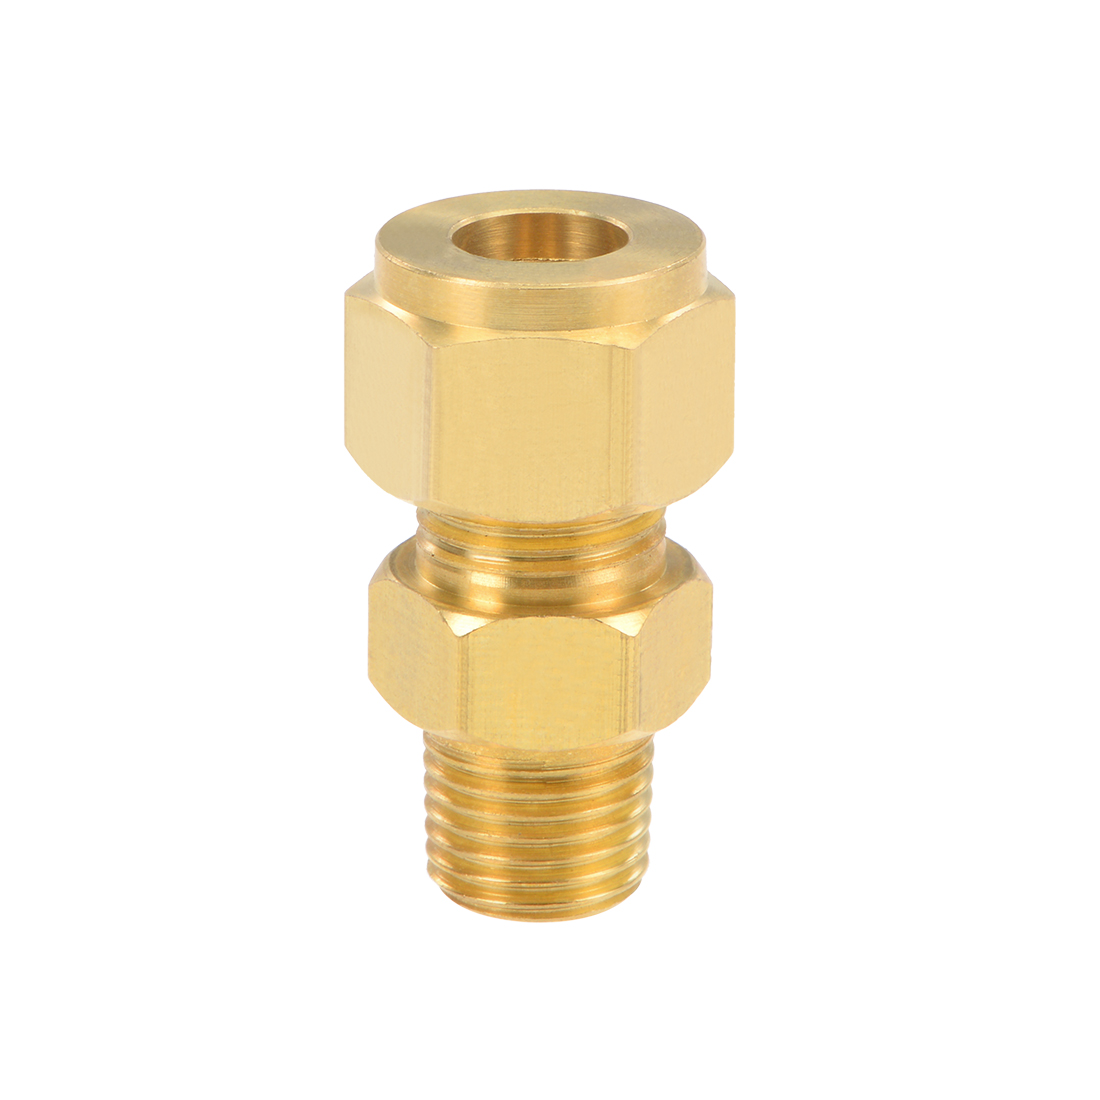 uxcell Brass Compression Tube Fitting 9.6mm OD 1/4 <font><b>NPT</b></font> Male Thread Pipe <font><b>Adapter</b></font> for Water Garden Irrigation System image